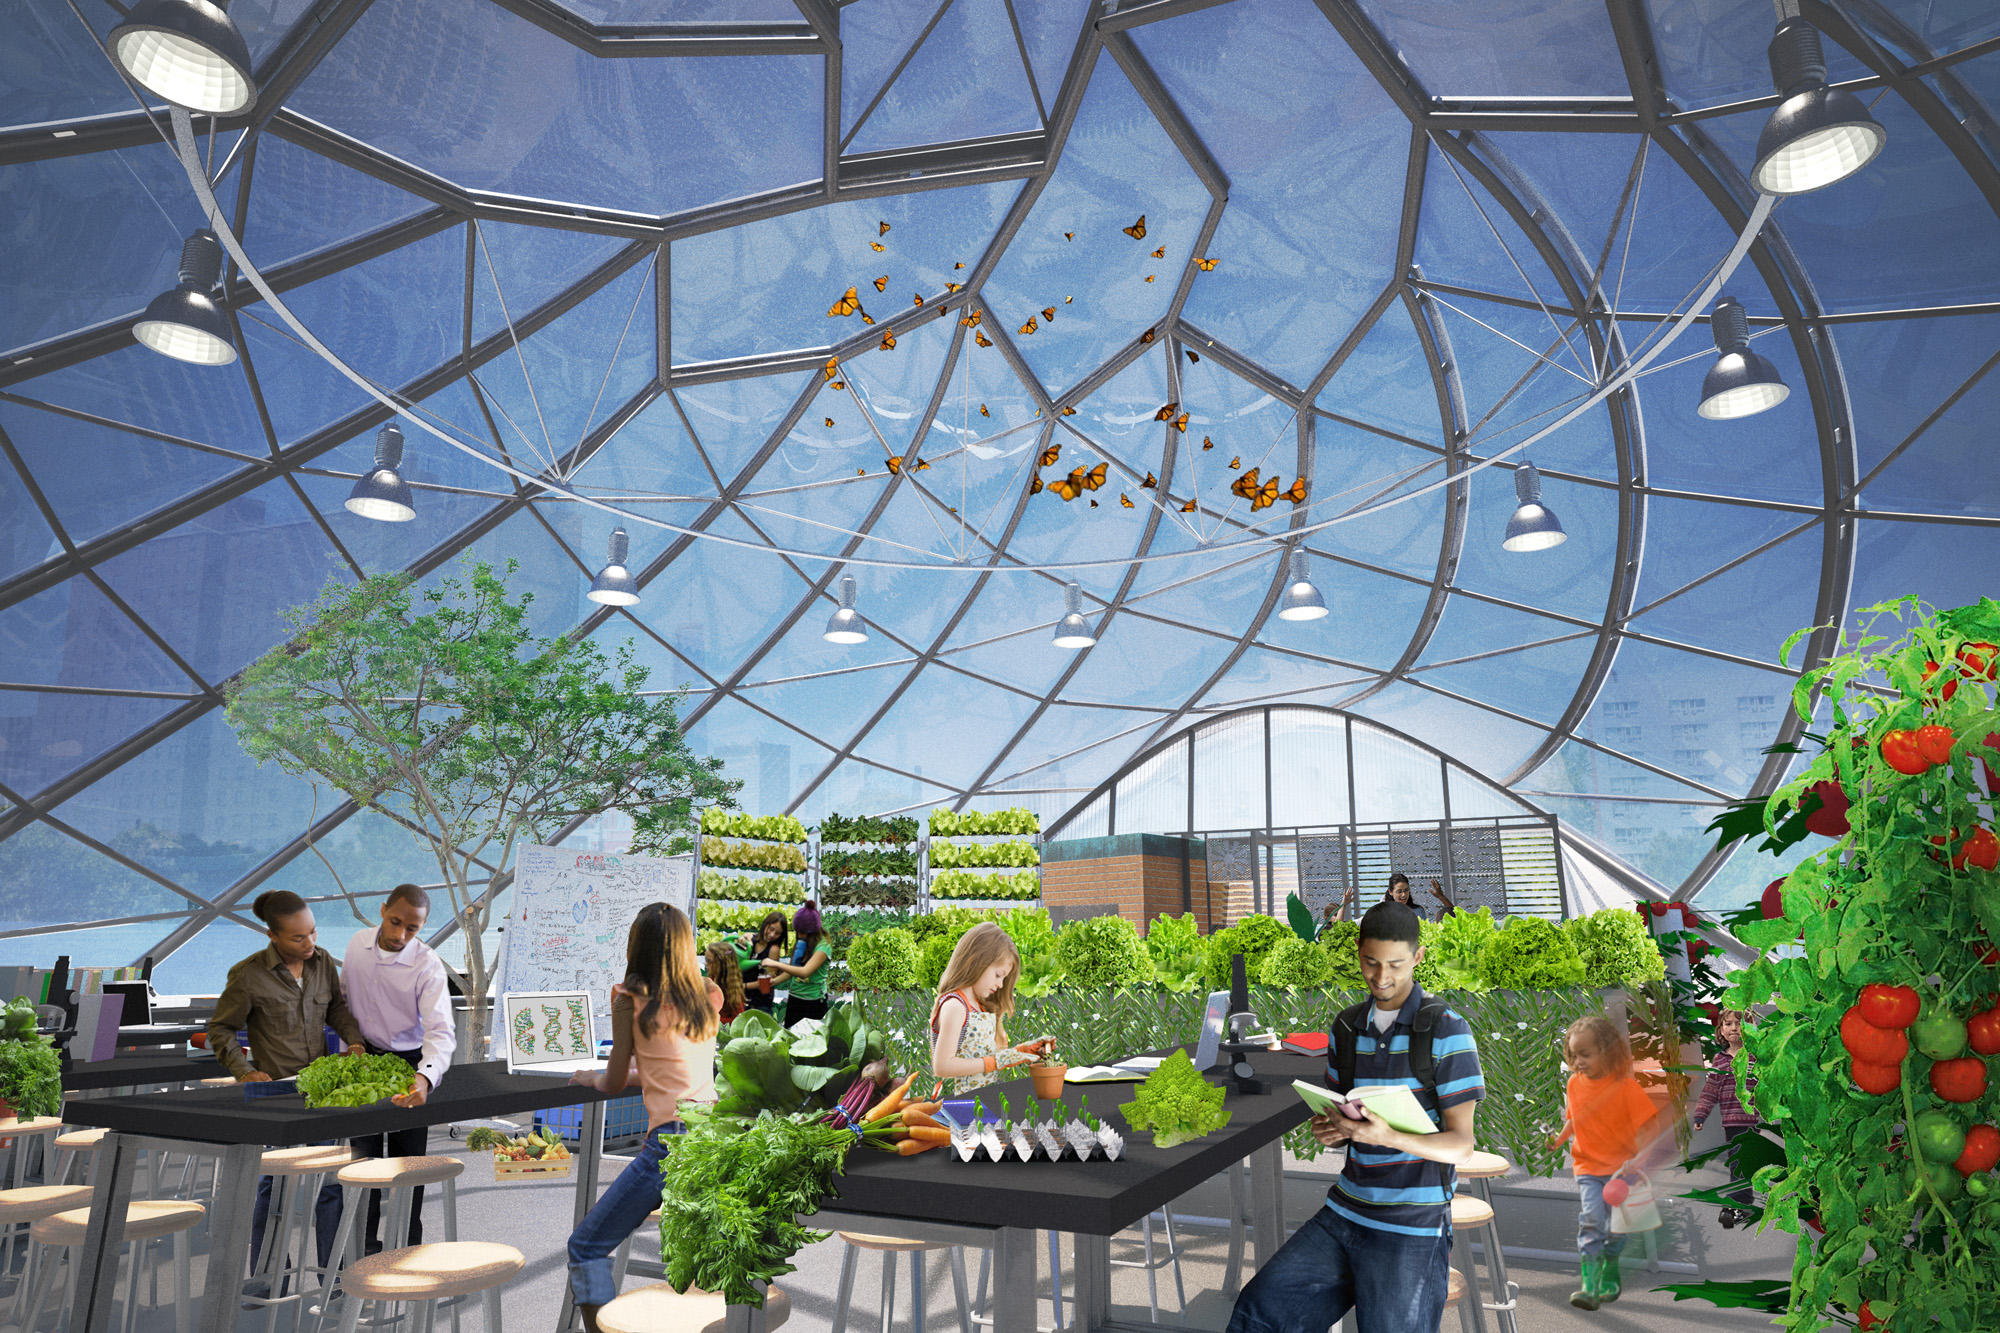 ARE×A's GreenLab to be featured at ACADIA 2015